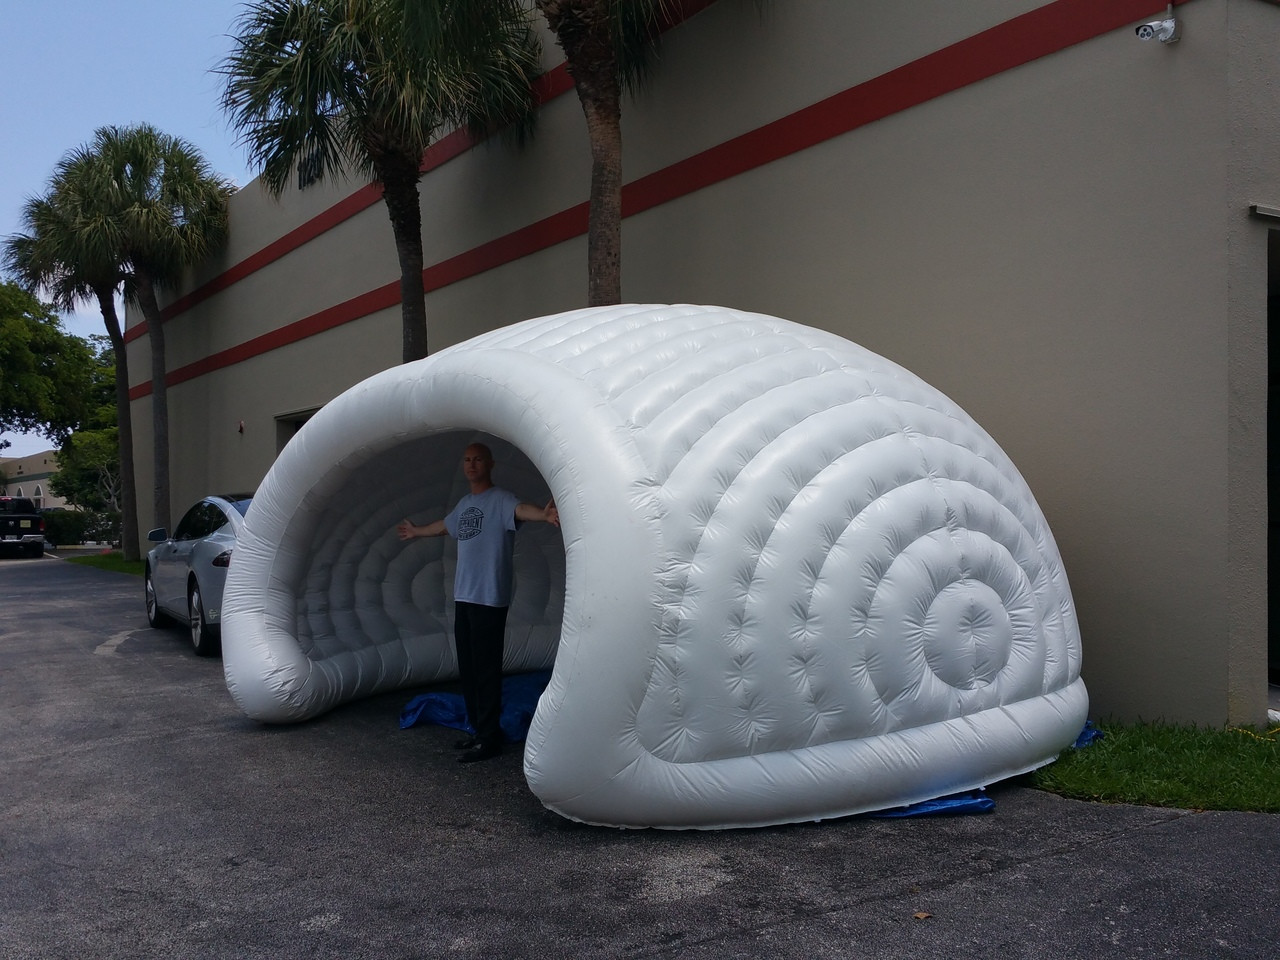 LED_DJ_BAR_VIP_BOOTH_Inflatable_Tent_Clam Shell_Cabana_VIP Cabana_VIP Booth